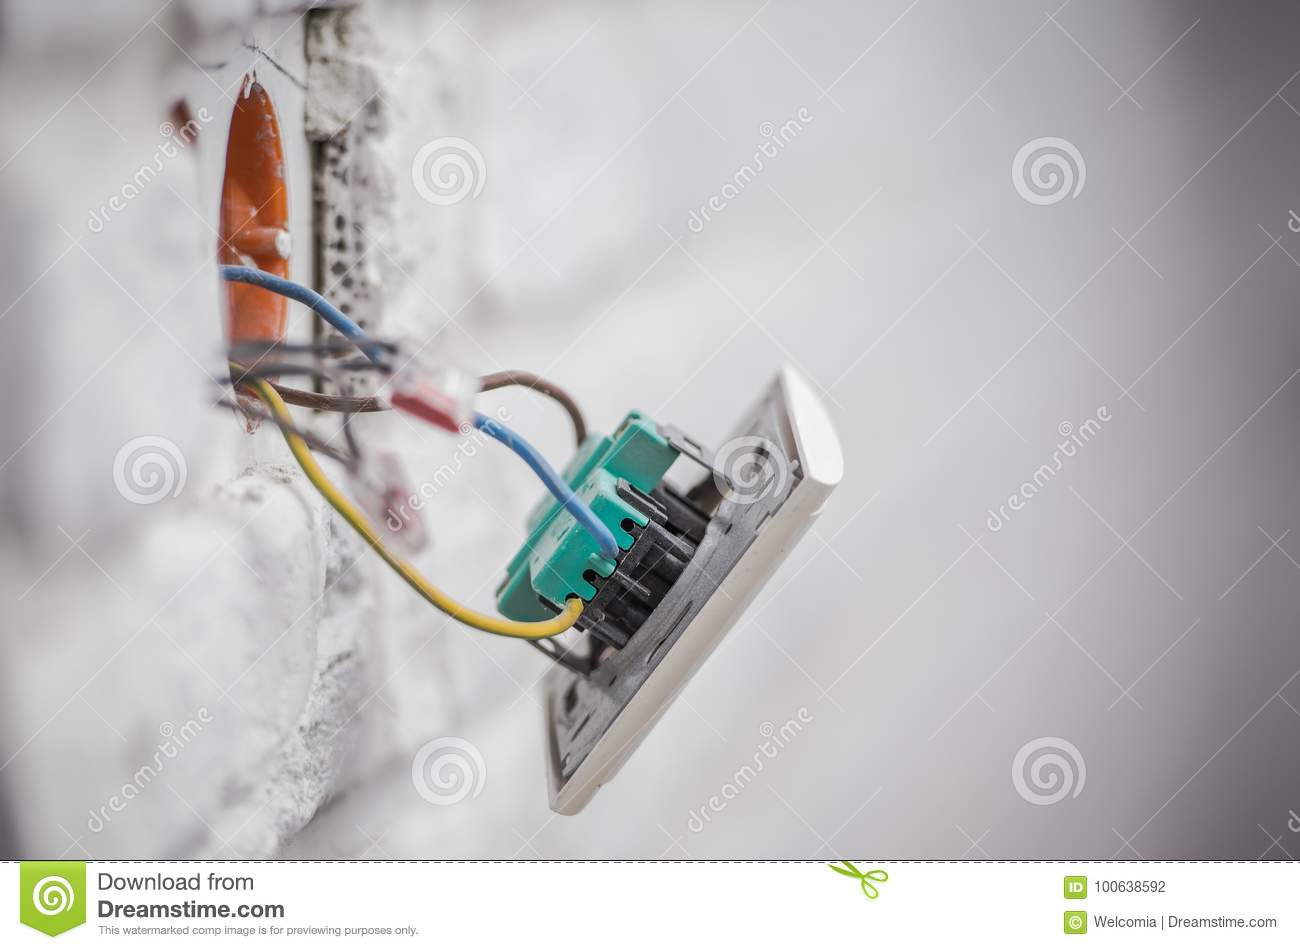 Electrical Wiring Plug Outlet Trusted Diagrams Wall Outlets Electric Installation Stock Photo Image Of Disposal